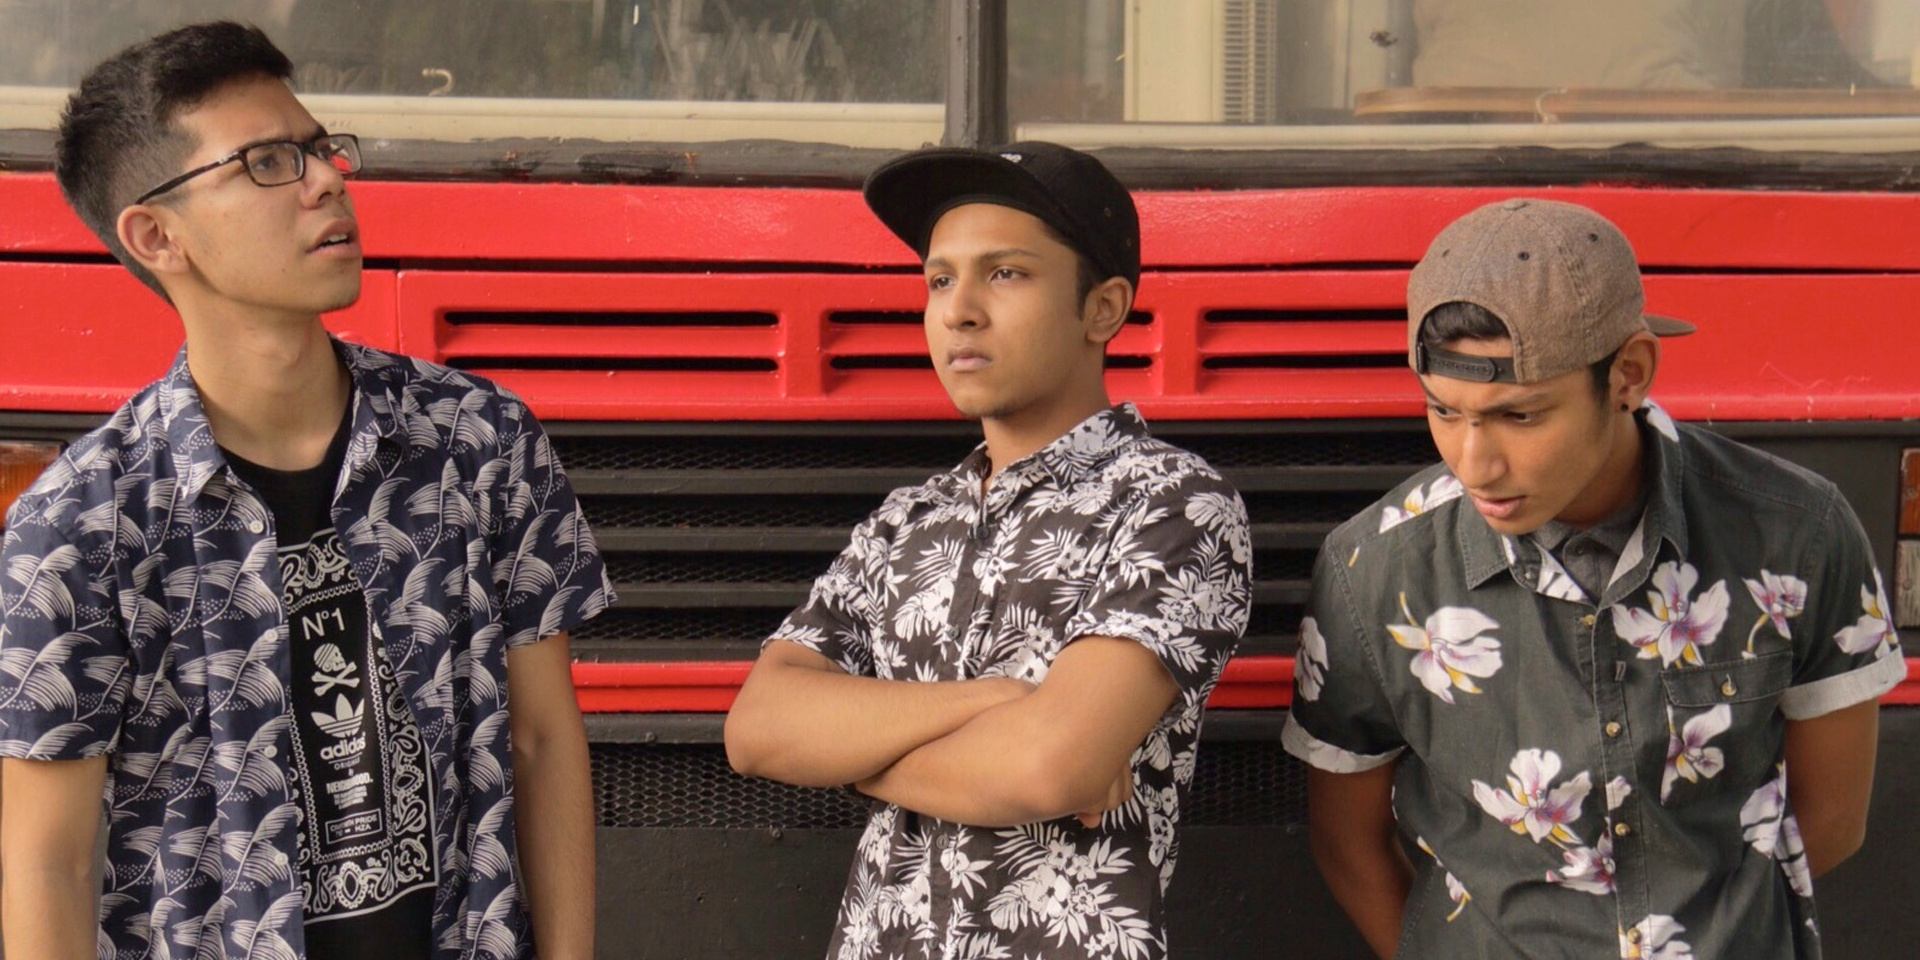 Fauxe and Mediocre Haircut Crew to perform at Singapore Art Museum